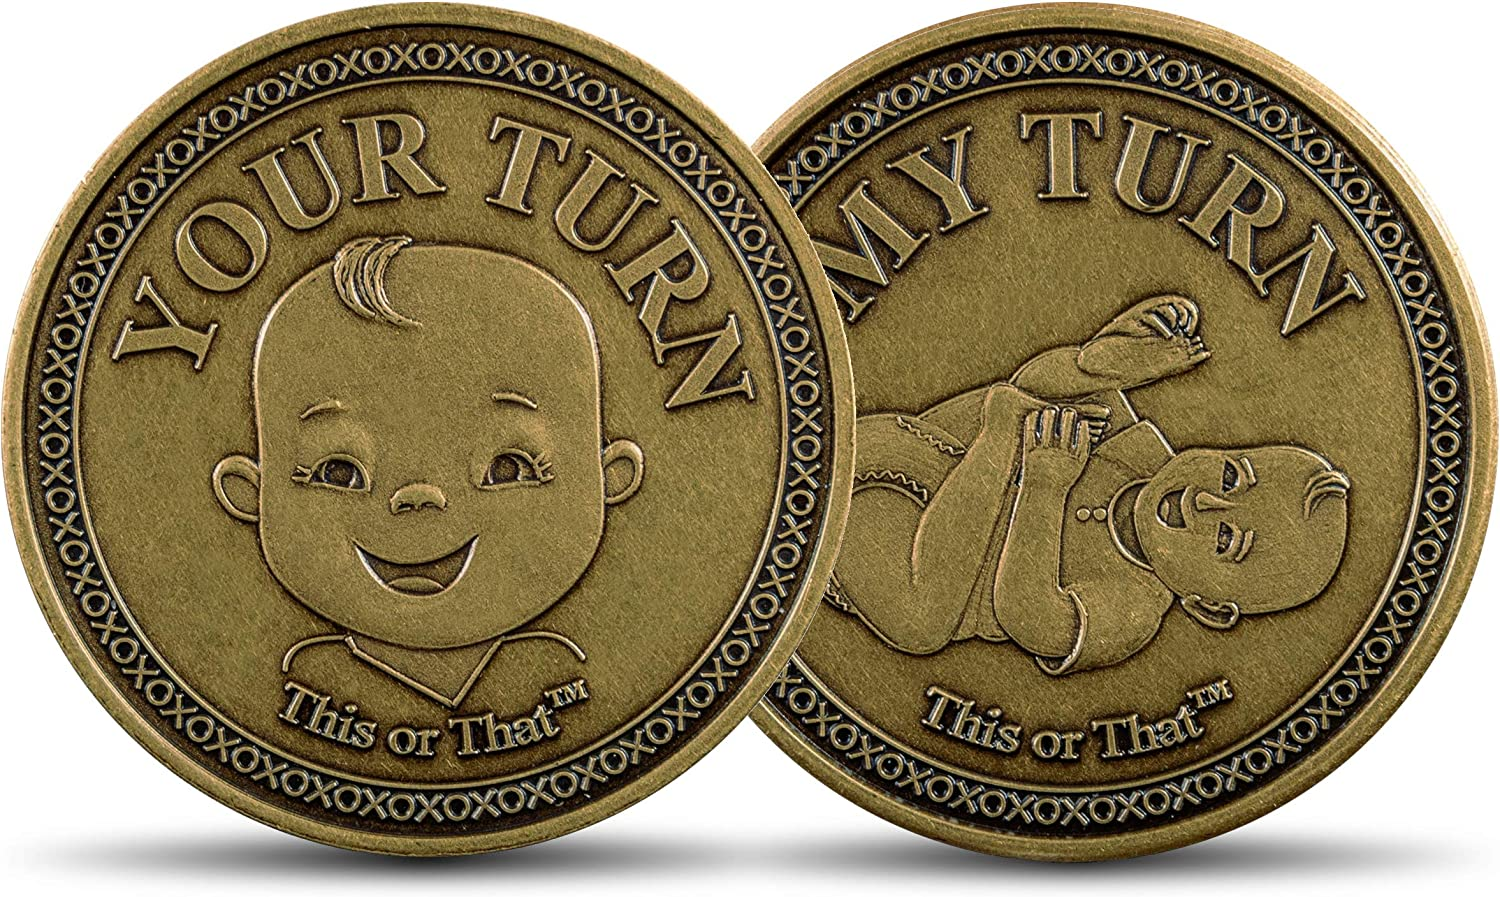 This or That Original Diaper Changing Decision Making Coin | Flip The Coin to See Who Changes Diaper – Unique for Expecting Parents or Fun Way to Celebrate Parenthood